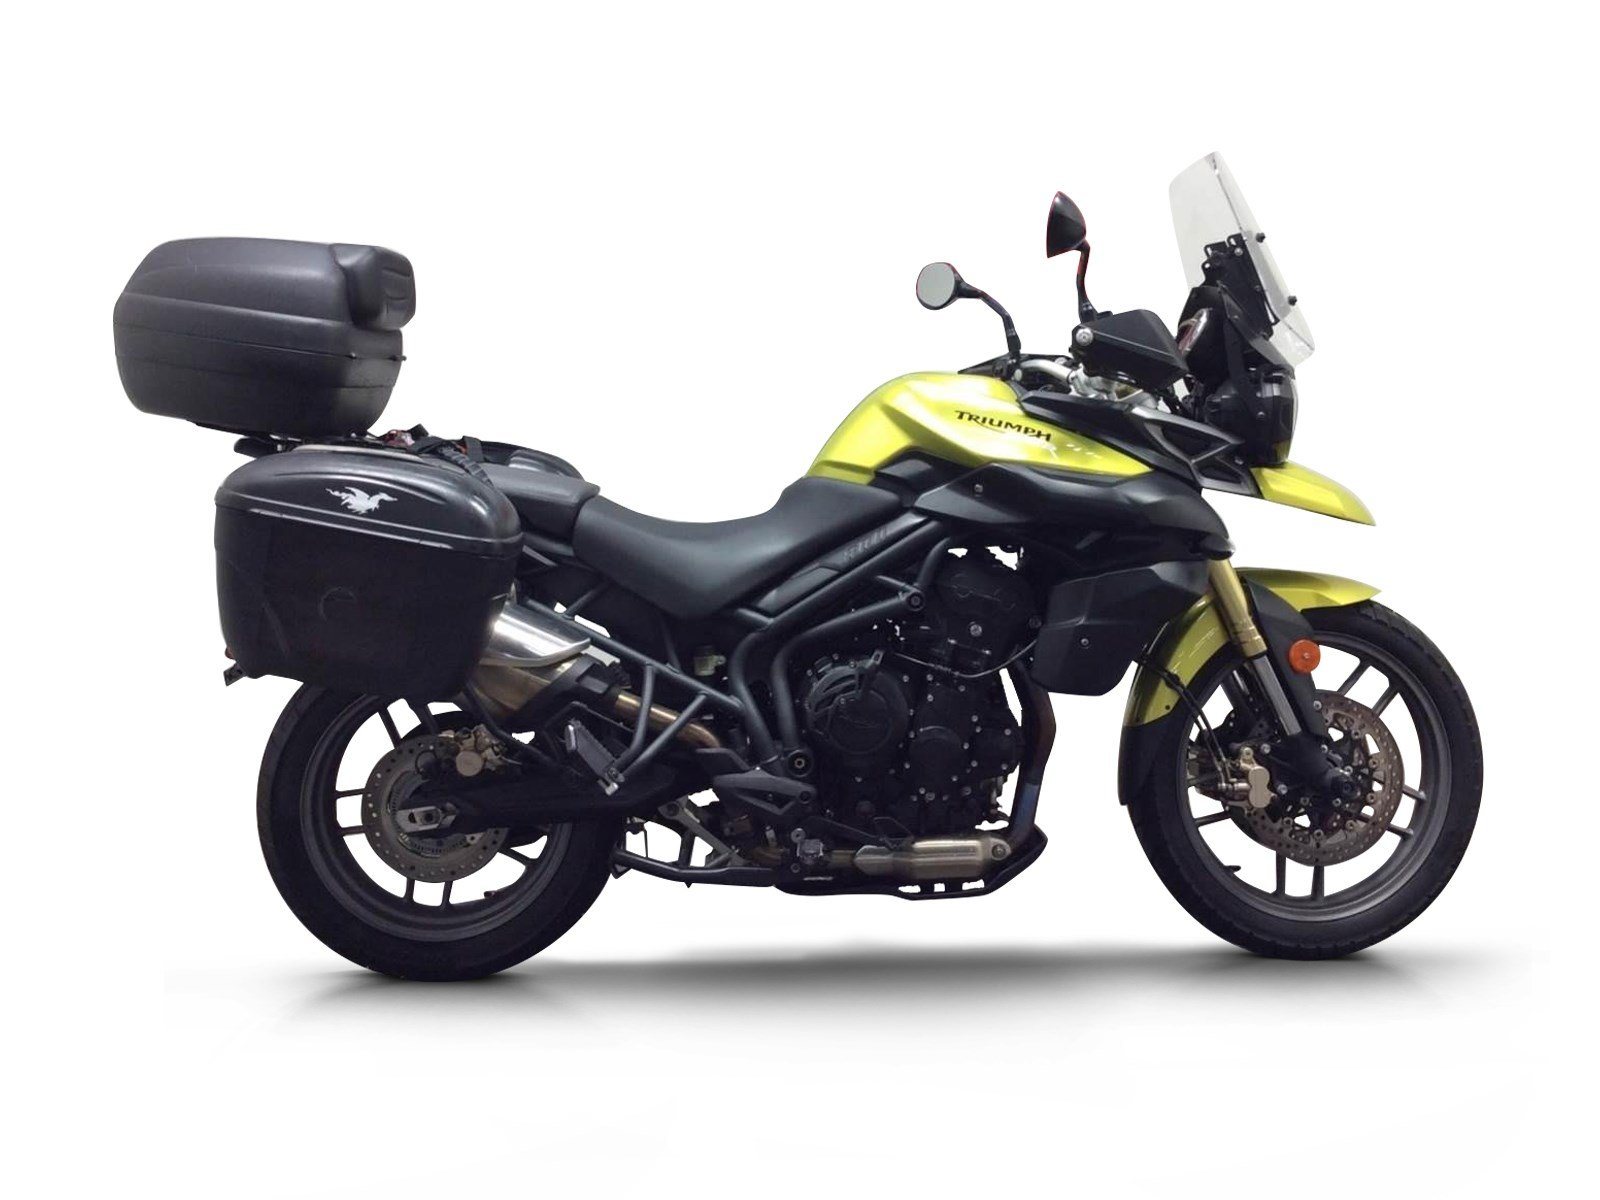 2012 Triumph Tiger 800 Abs For Sale